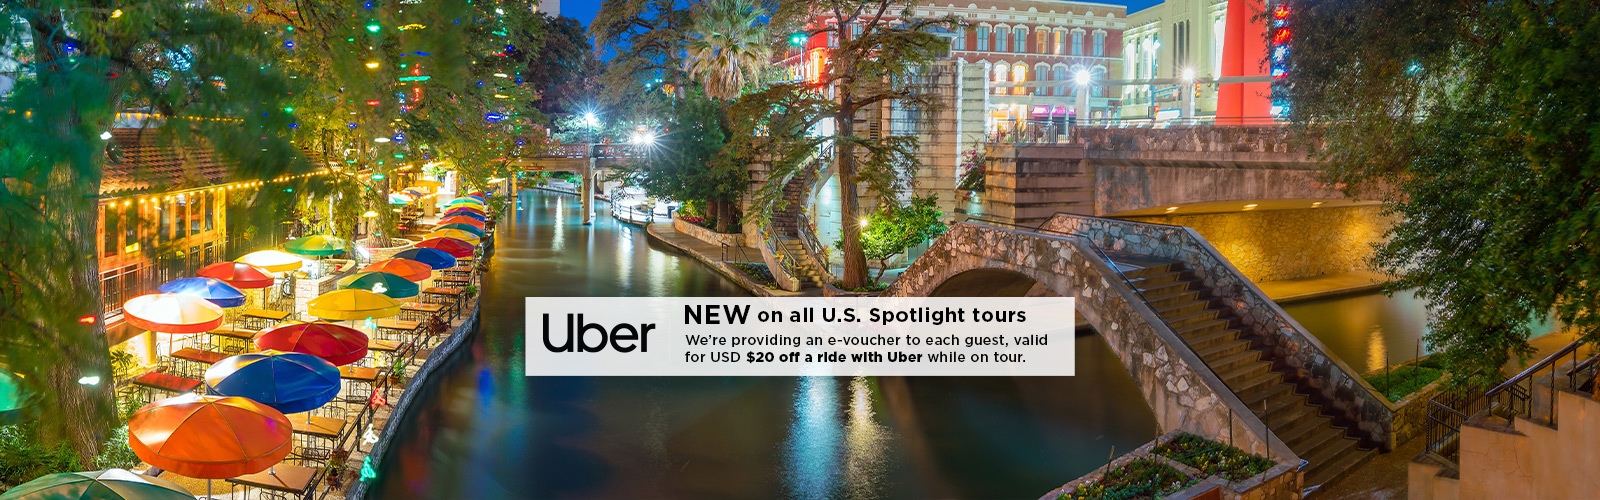 https://i.gocollette.com/tour-media-manager/tours/north-america/usa/64/packages/master-package_holiday/top-carousel/spotlightsanantonio-riverwalk-uber-hero.jpg